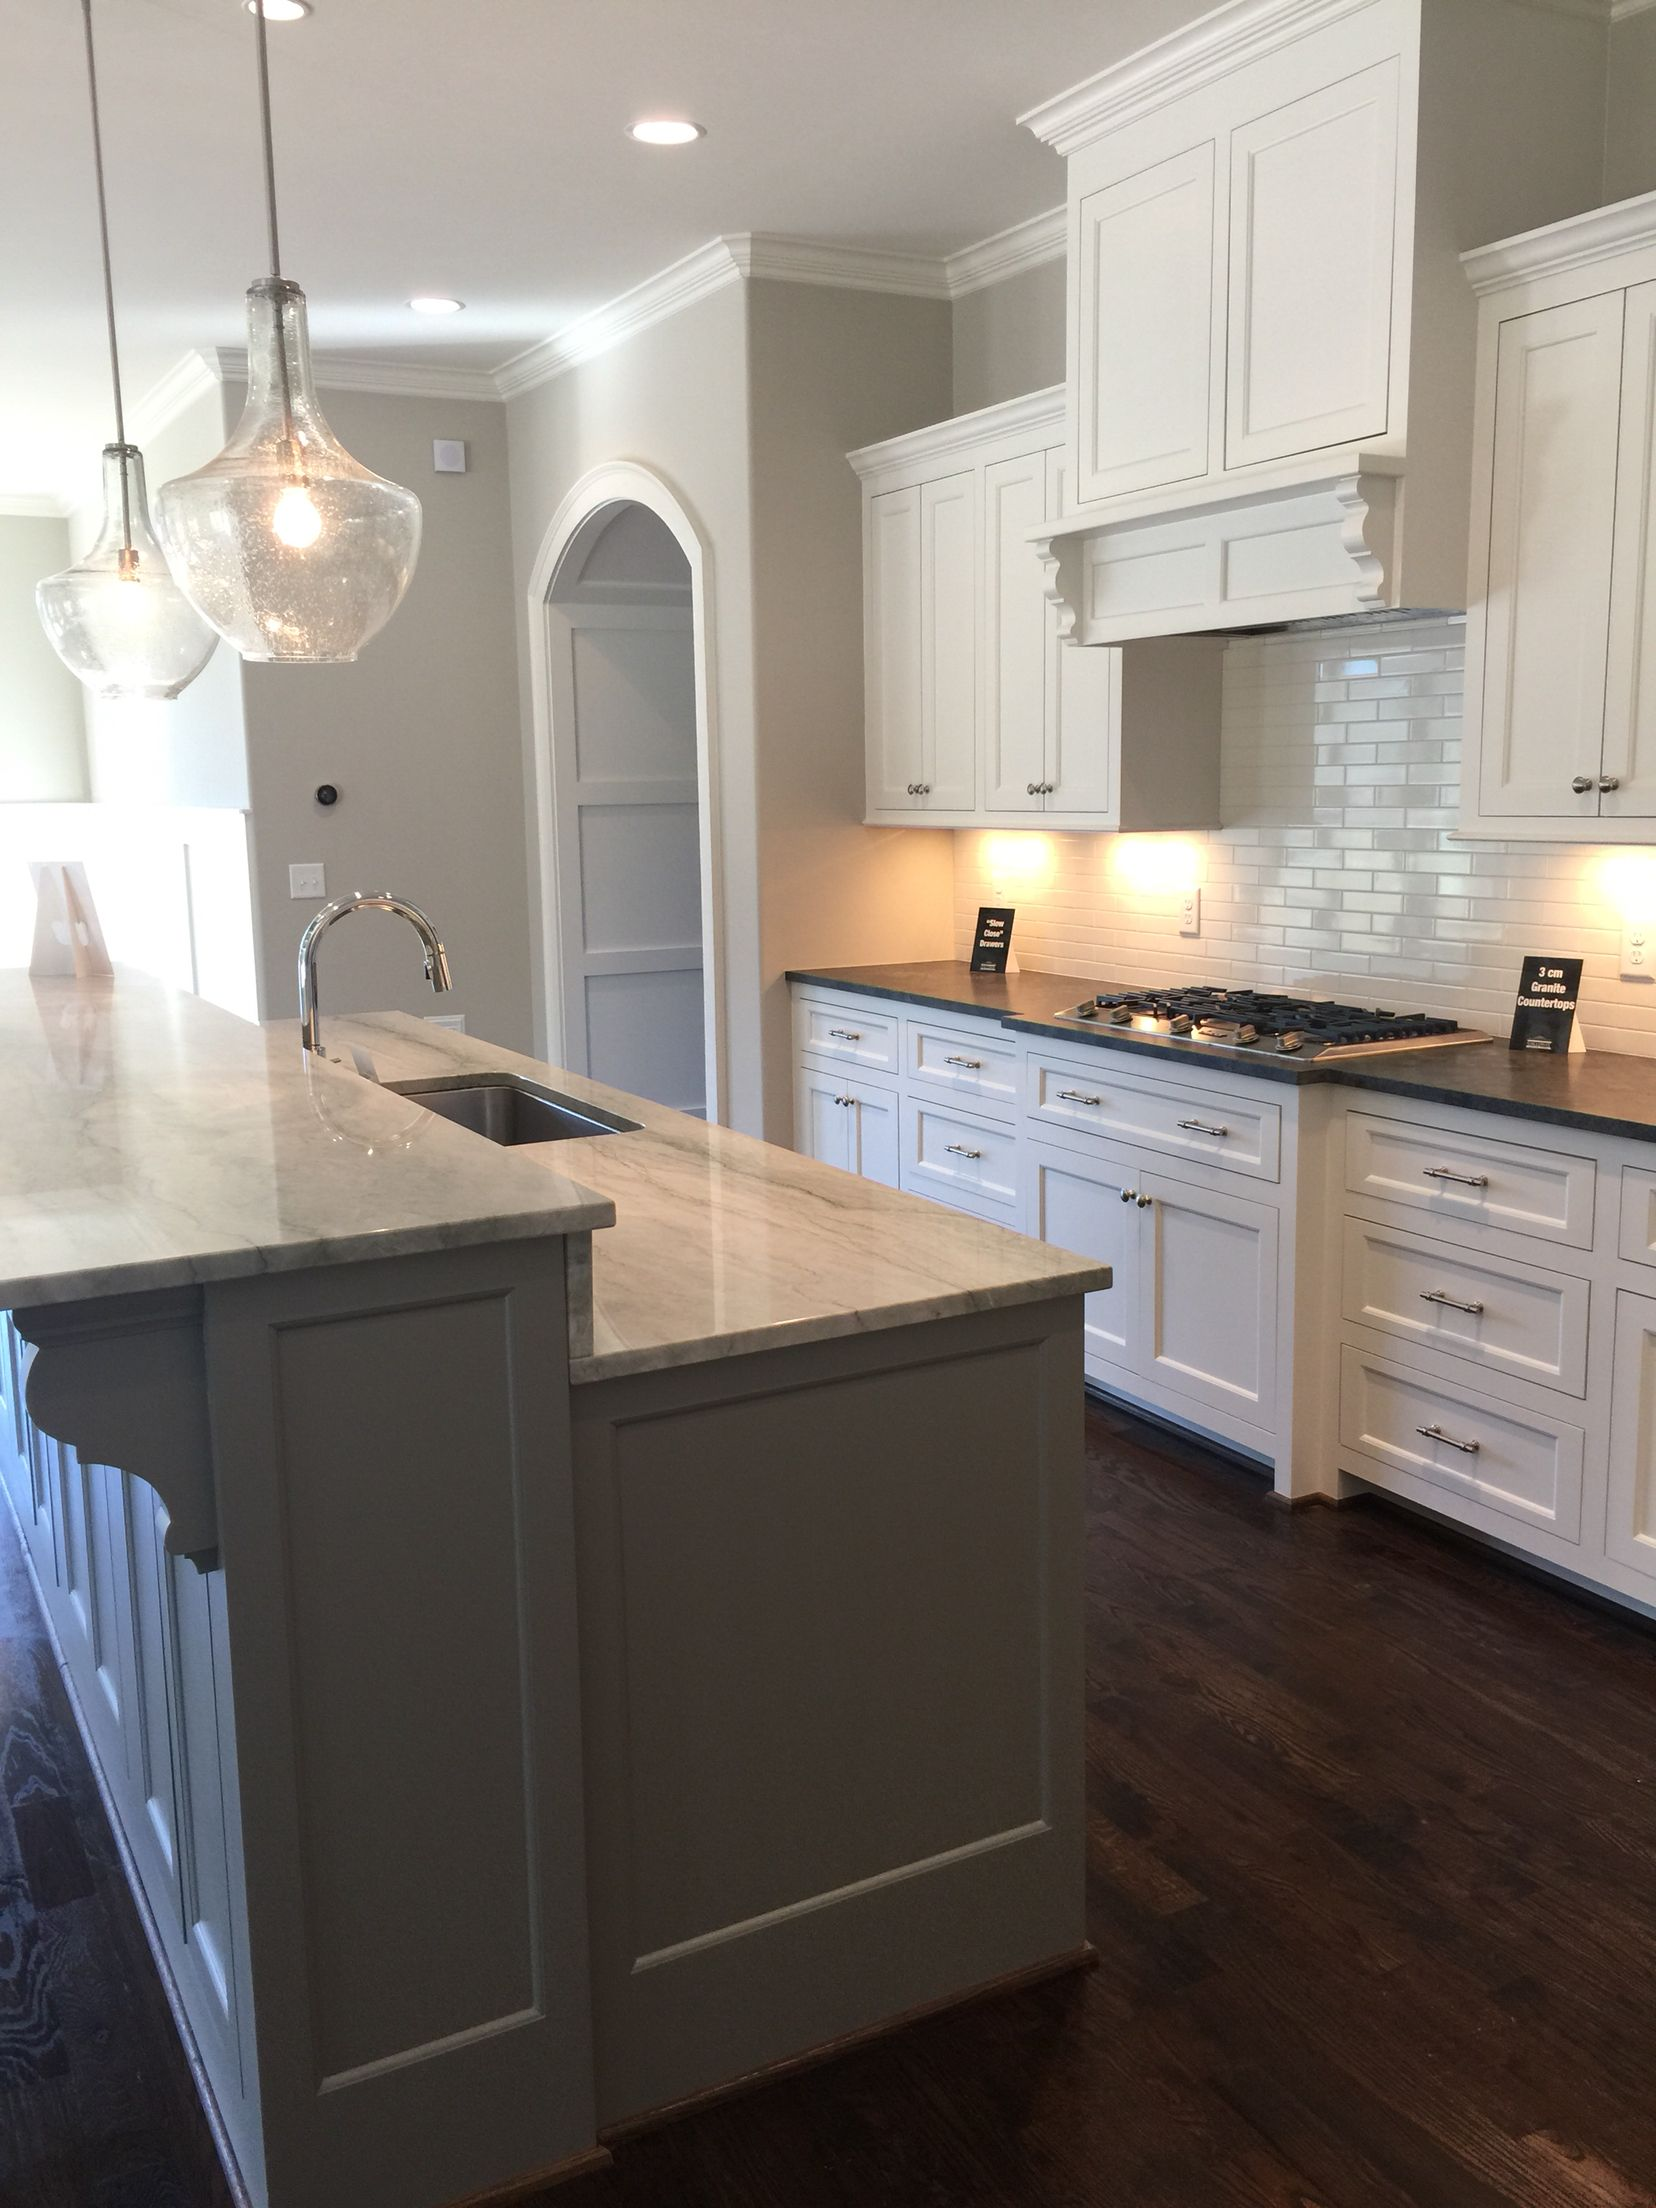 Sw Alabaster Cabinets Mystic Grey Satin Brushed Granite Perimeter Countertops Sea Pearl Island Kitchen Design Home Kitchens White Kitchen Design